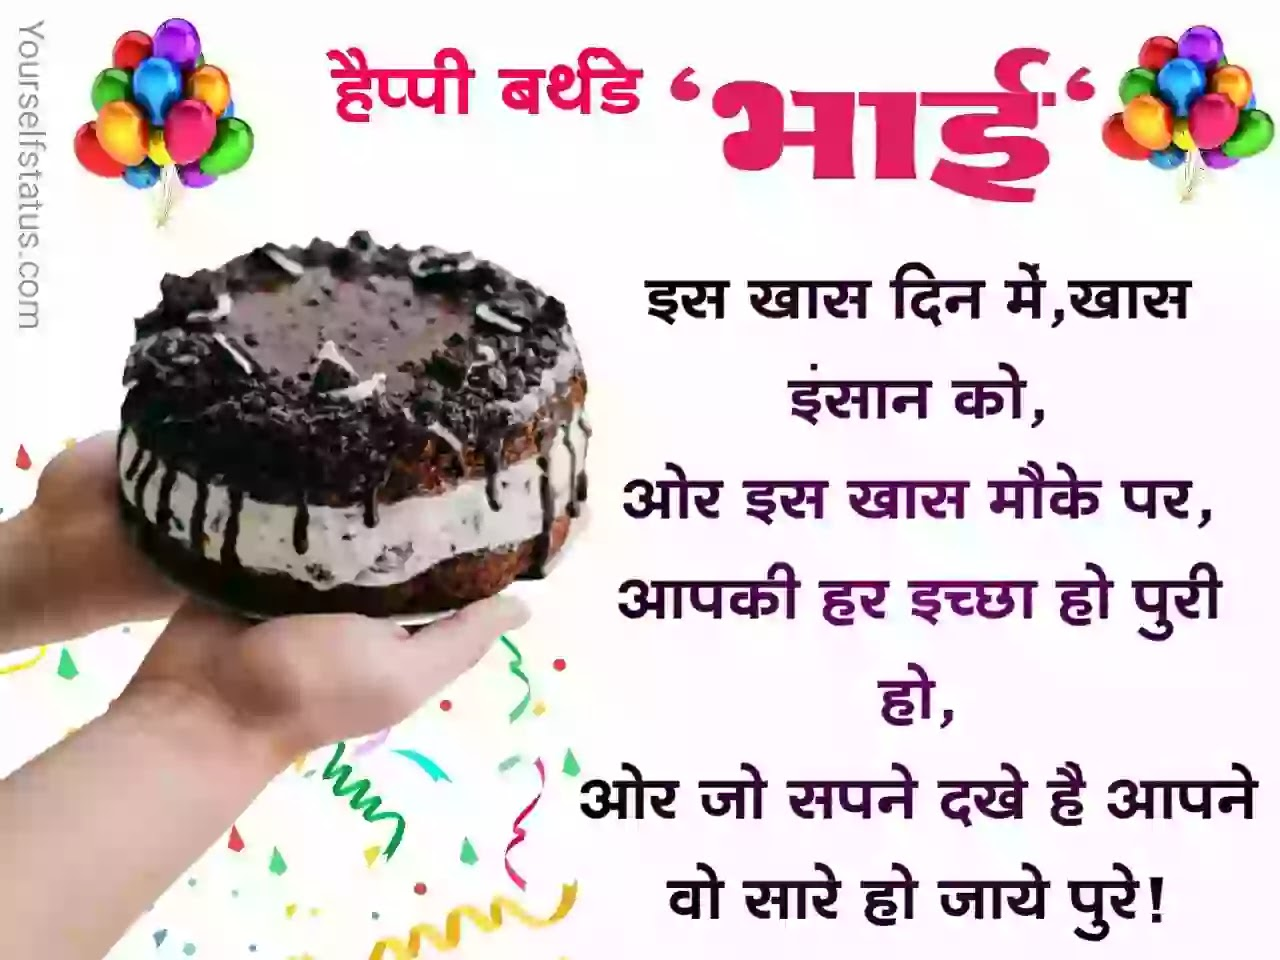 Birthday-images-for-brother-hindi